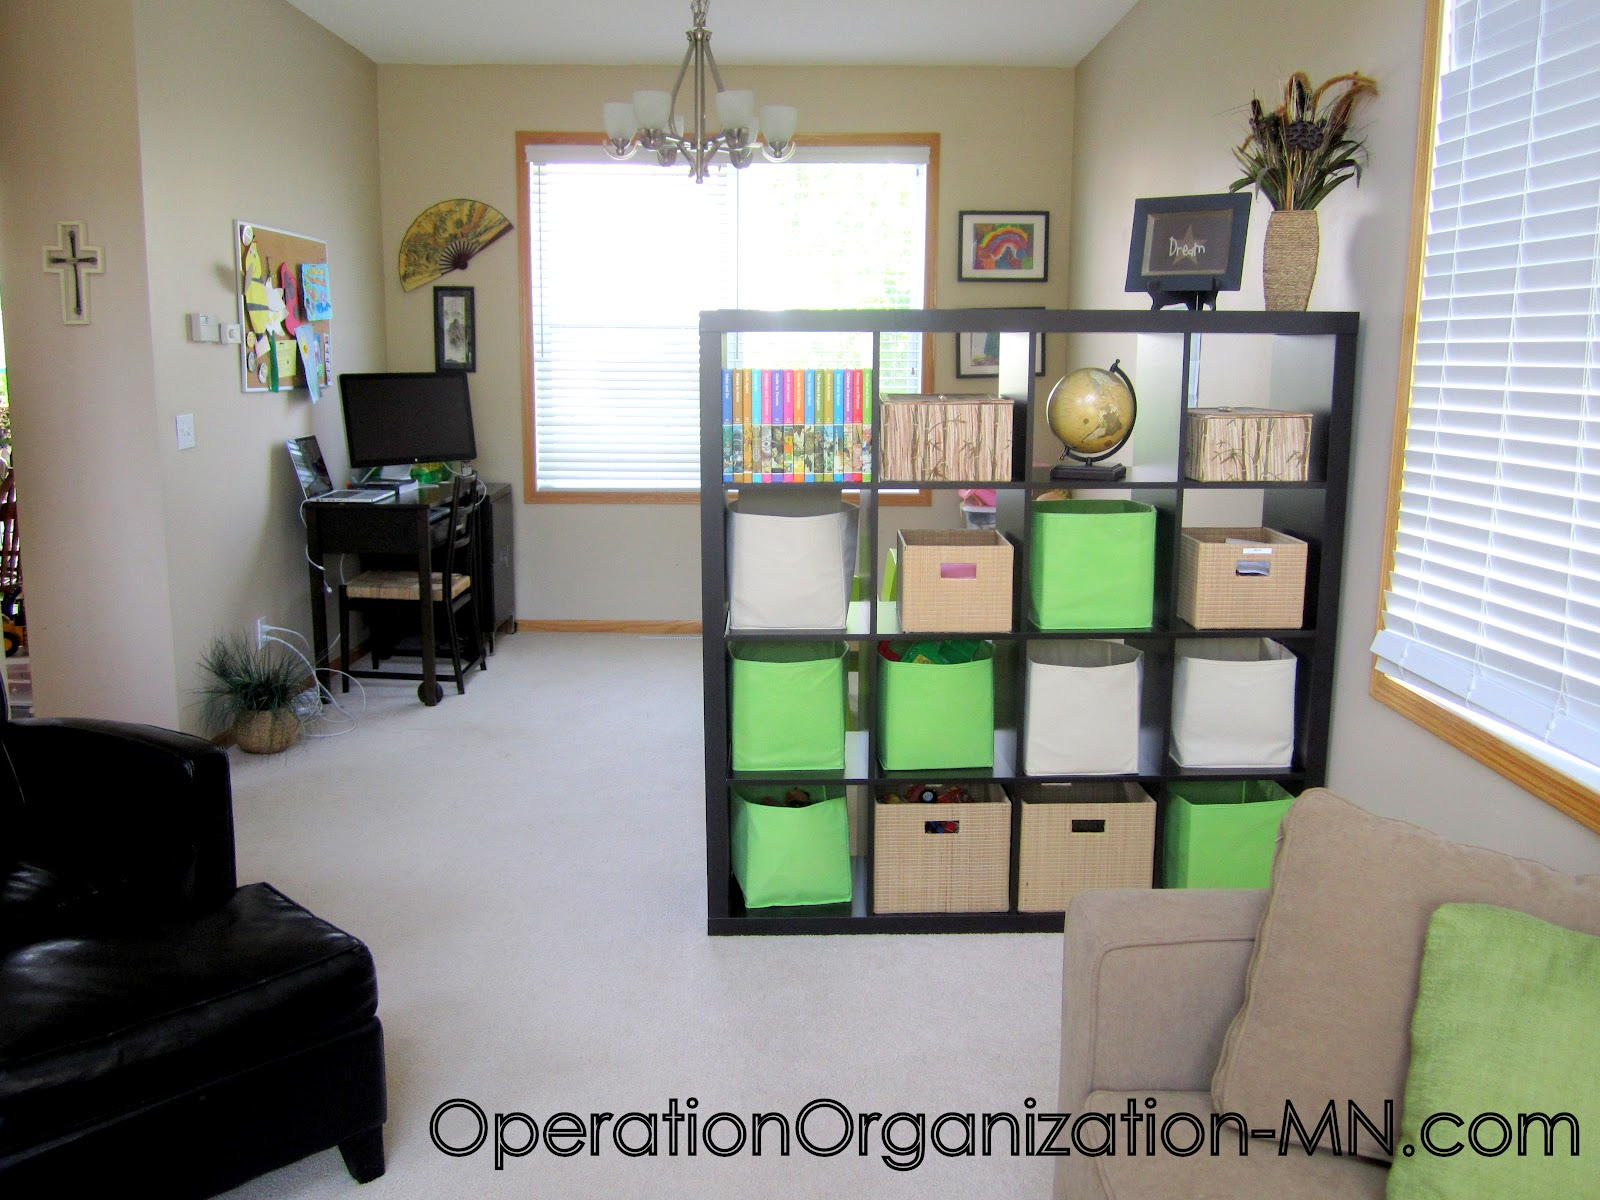 Living Room Organization operation organization: professional organizer peachtree city